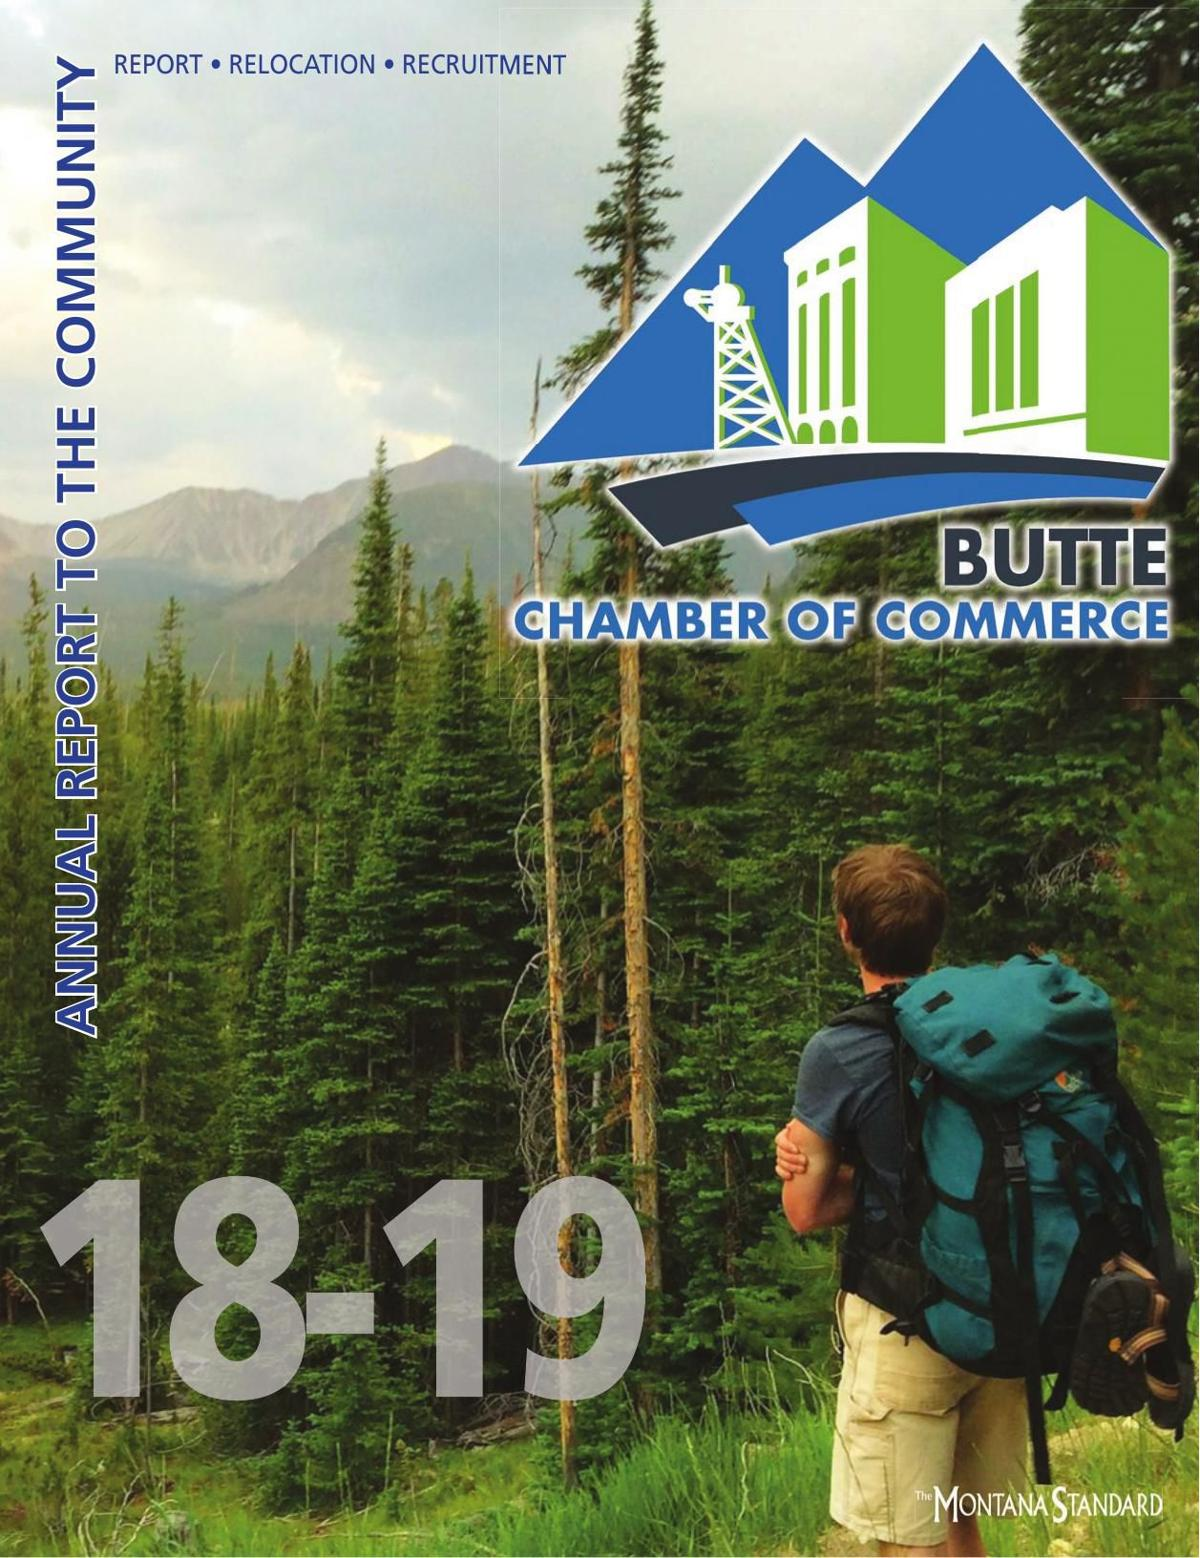 Butte Chamber of Commerce - Annual Report to the Community - 2018/2019